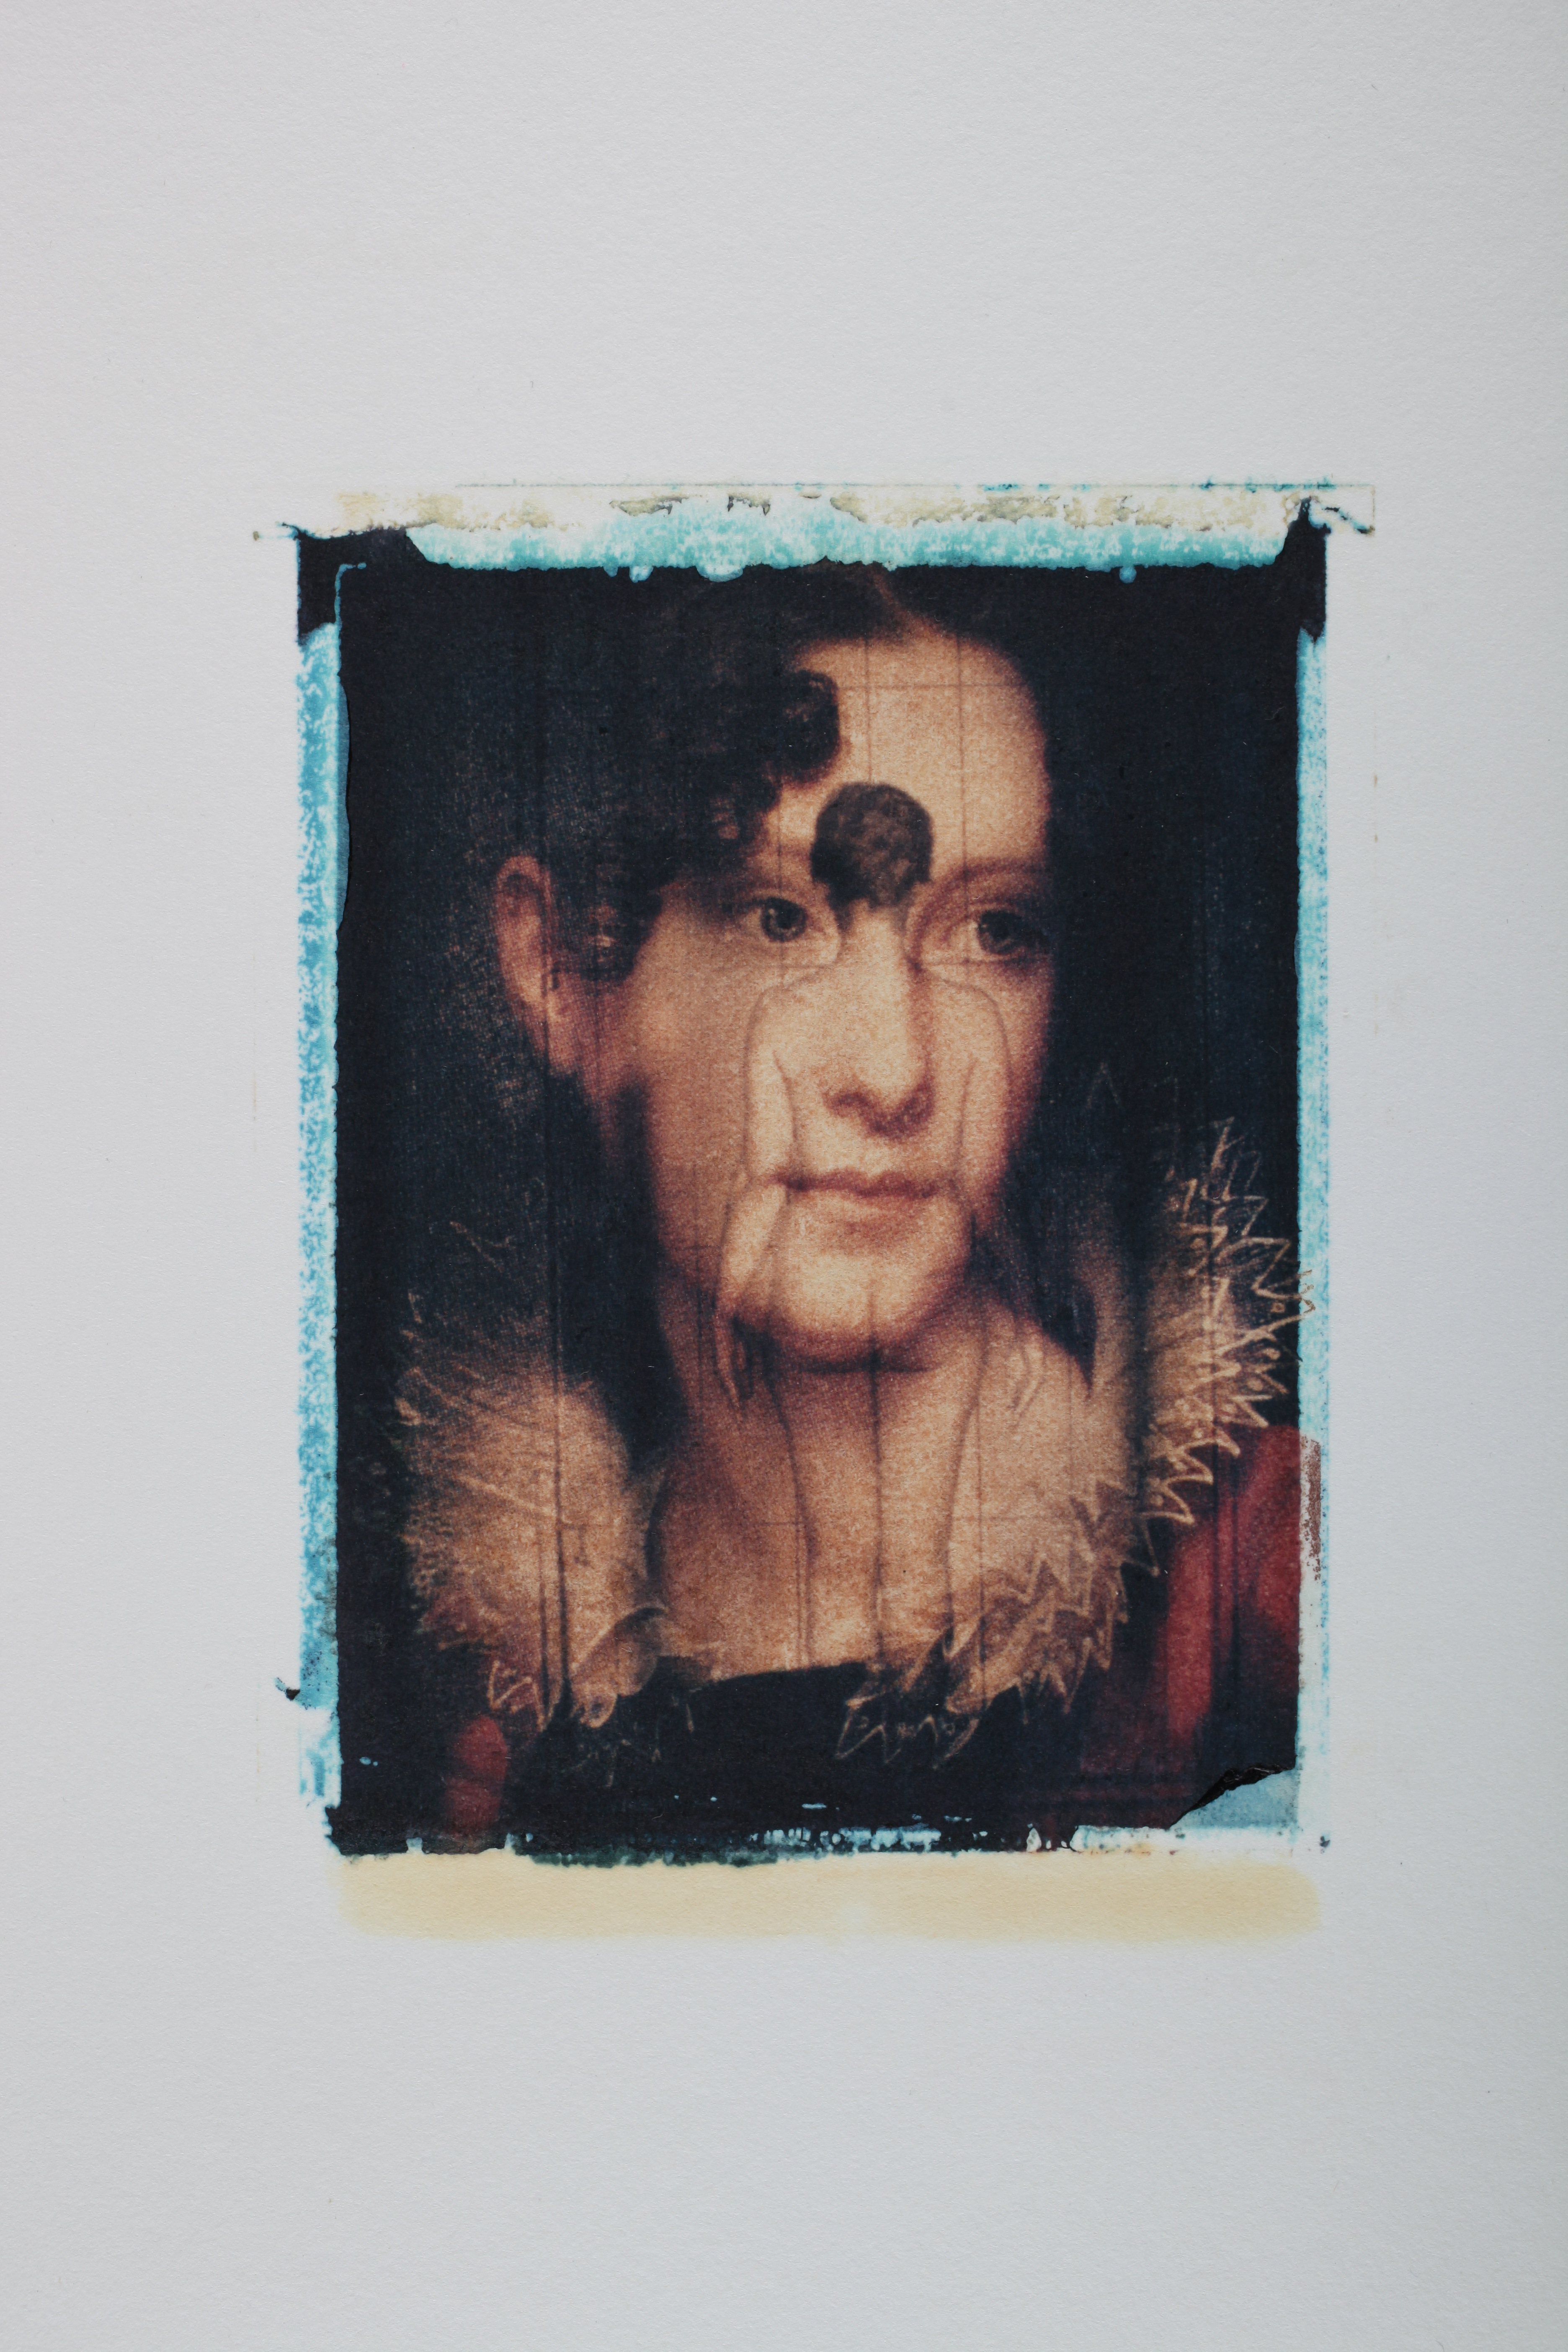 Multi-layered Polaroid image by Robert Seydel with woman's face and backside of nude woman's body